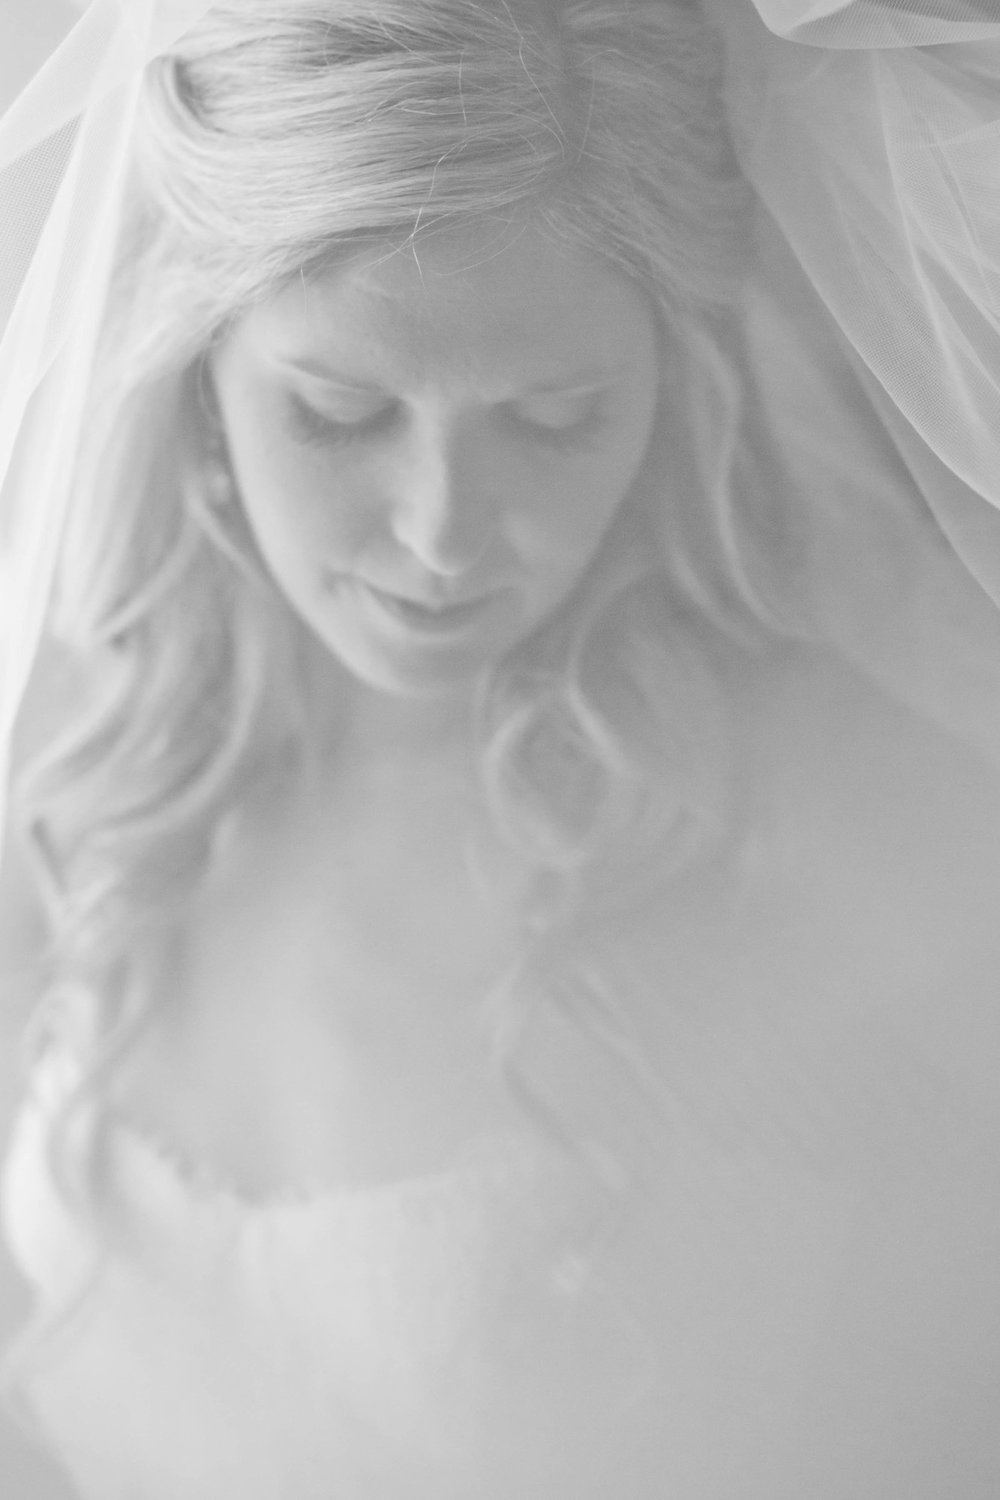 amanda cowley events niagara wedding planner white oaks bridal portrait black and white